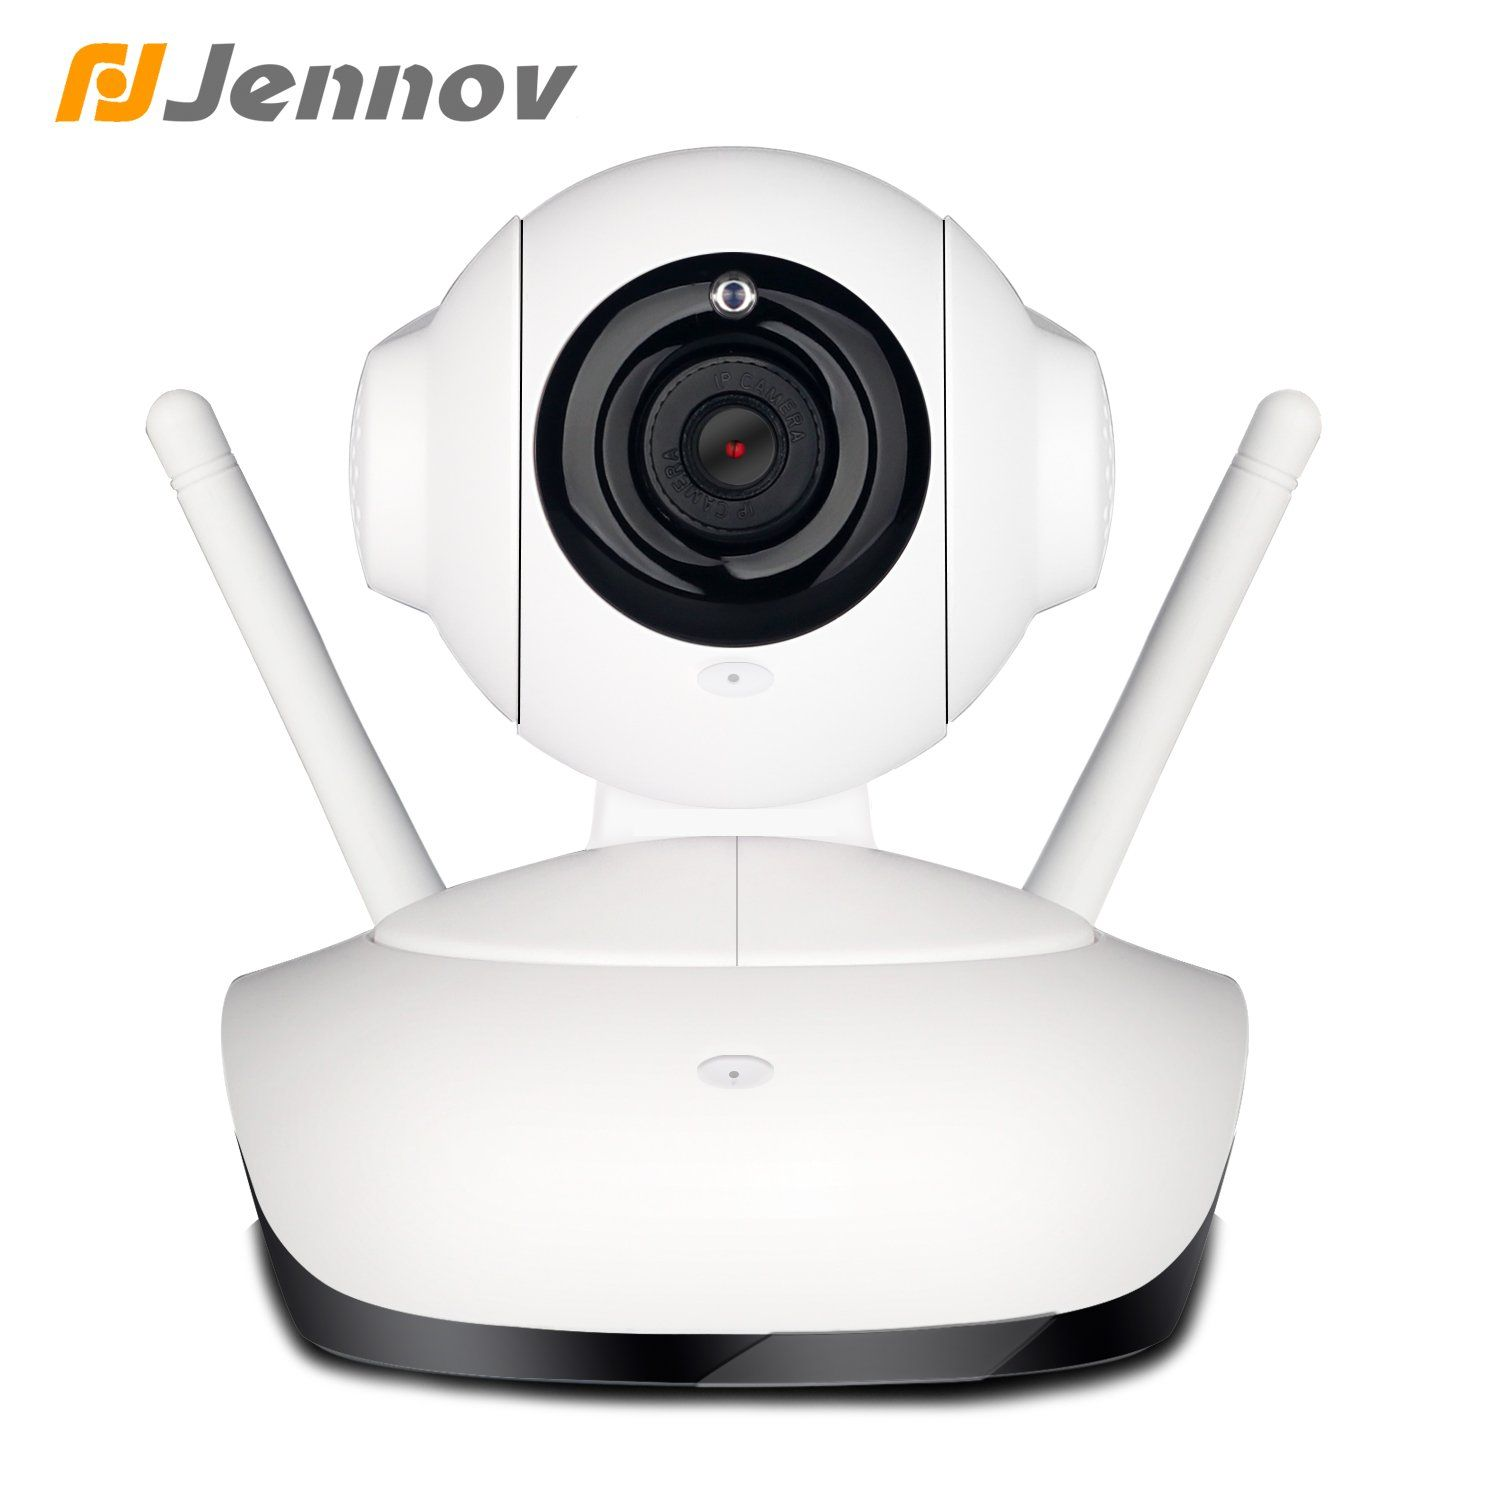 Jennov wireless wifi ip security camera hd 1080p home surveillance jennov wireless wifi ip security camera hd 1080p home surveillance system indoor for baby pet monitor solutioingenieria Choice Image